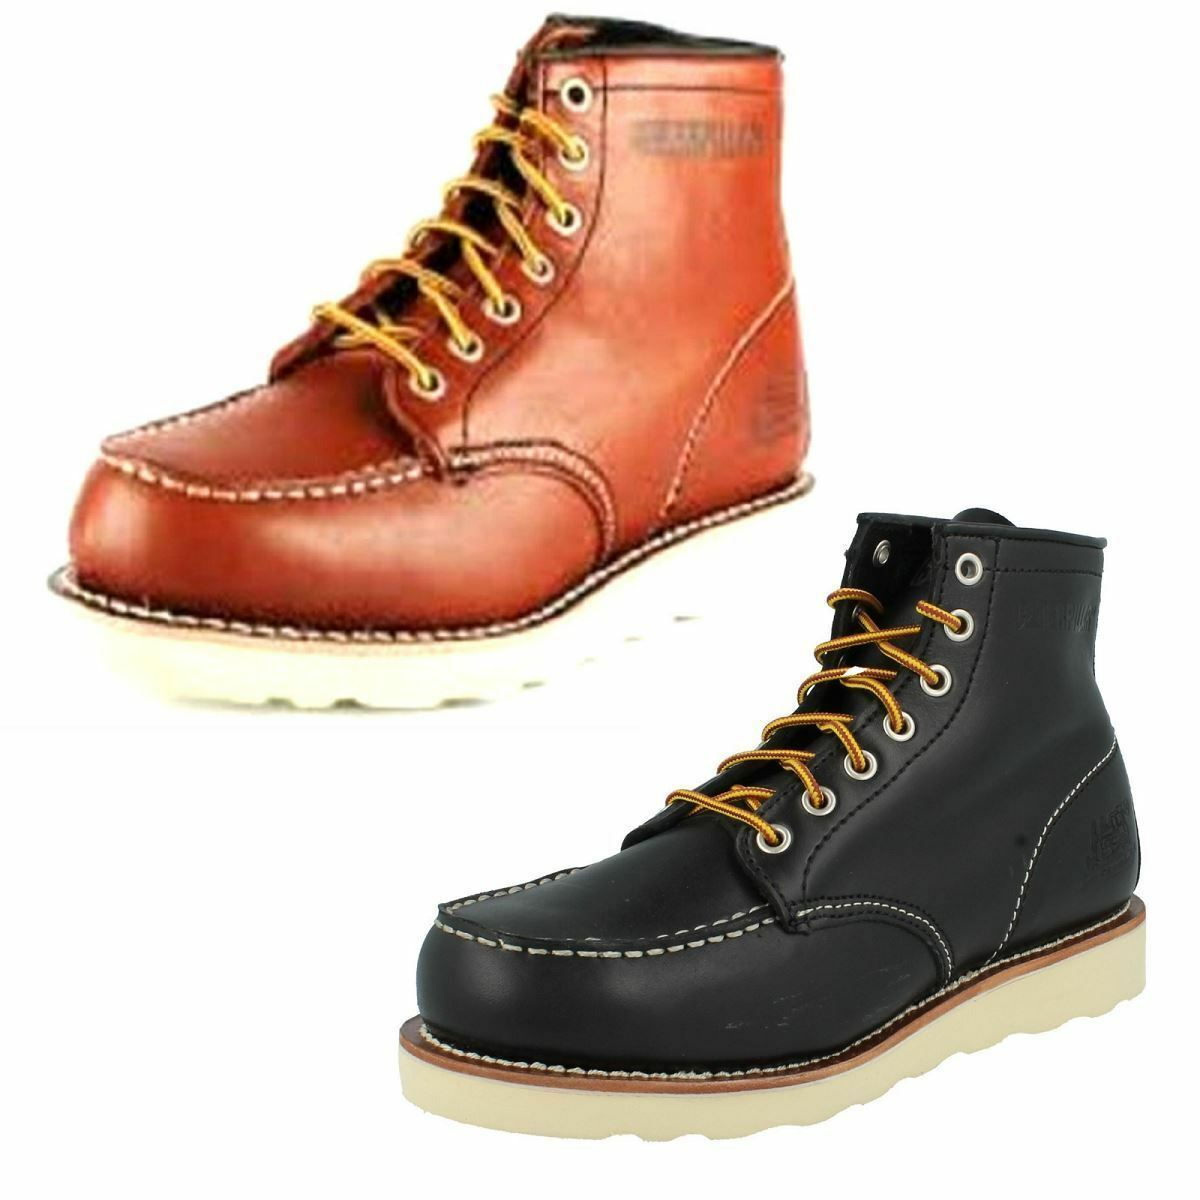 MENS CATERPILLAR HILLSIDE BLACK LACE UP LEATHER SMART CASUAL WINTER BOOTS SHOES